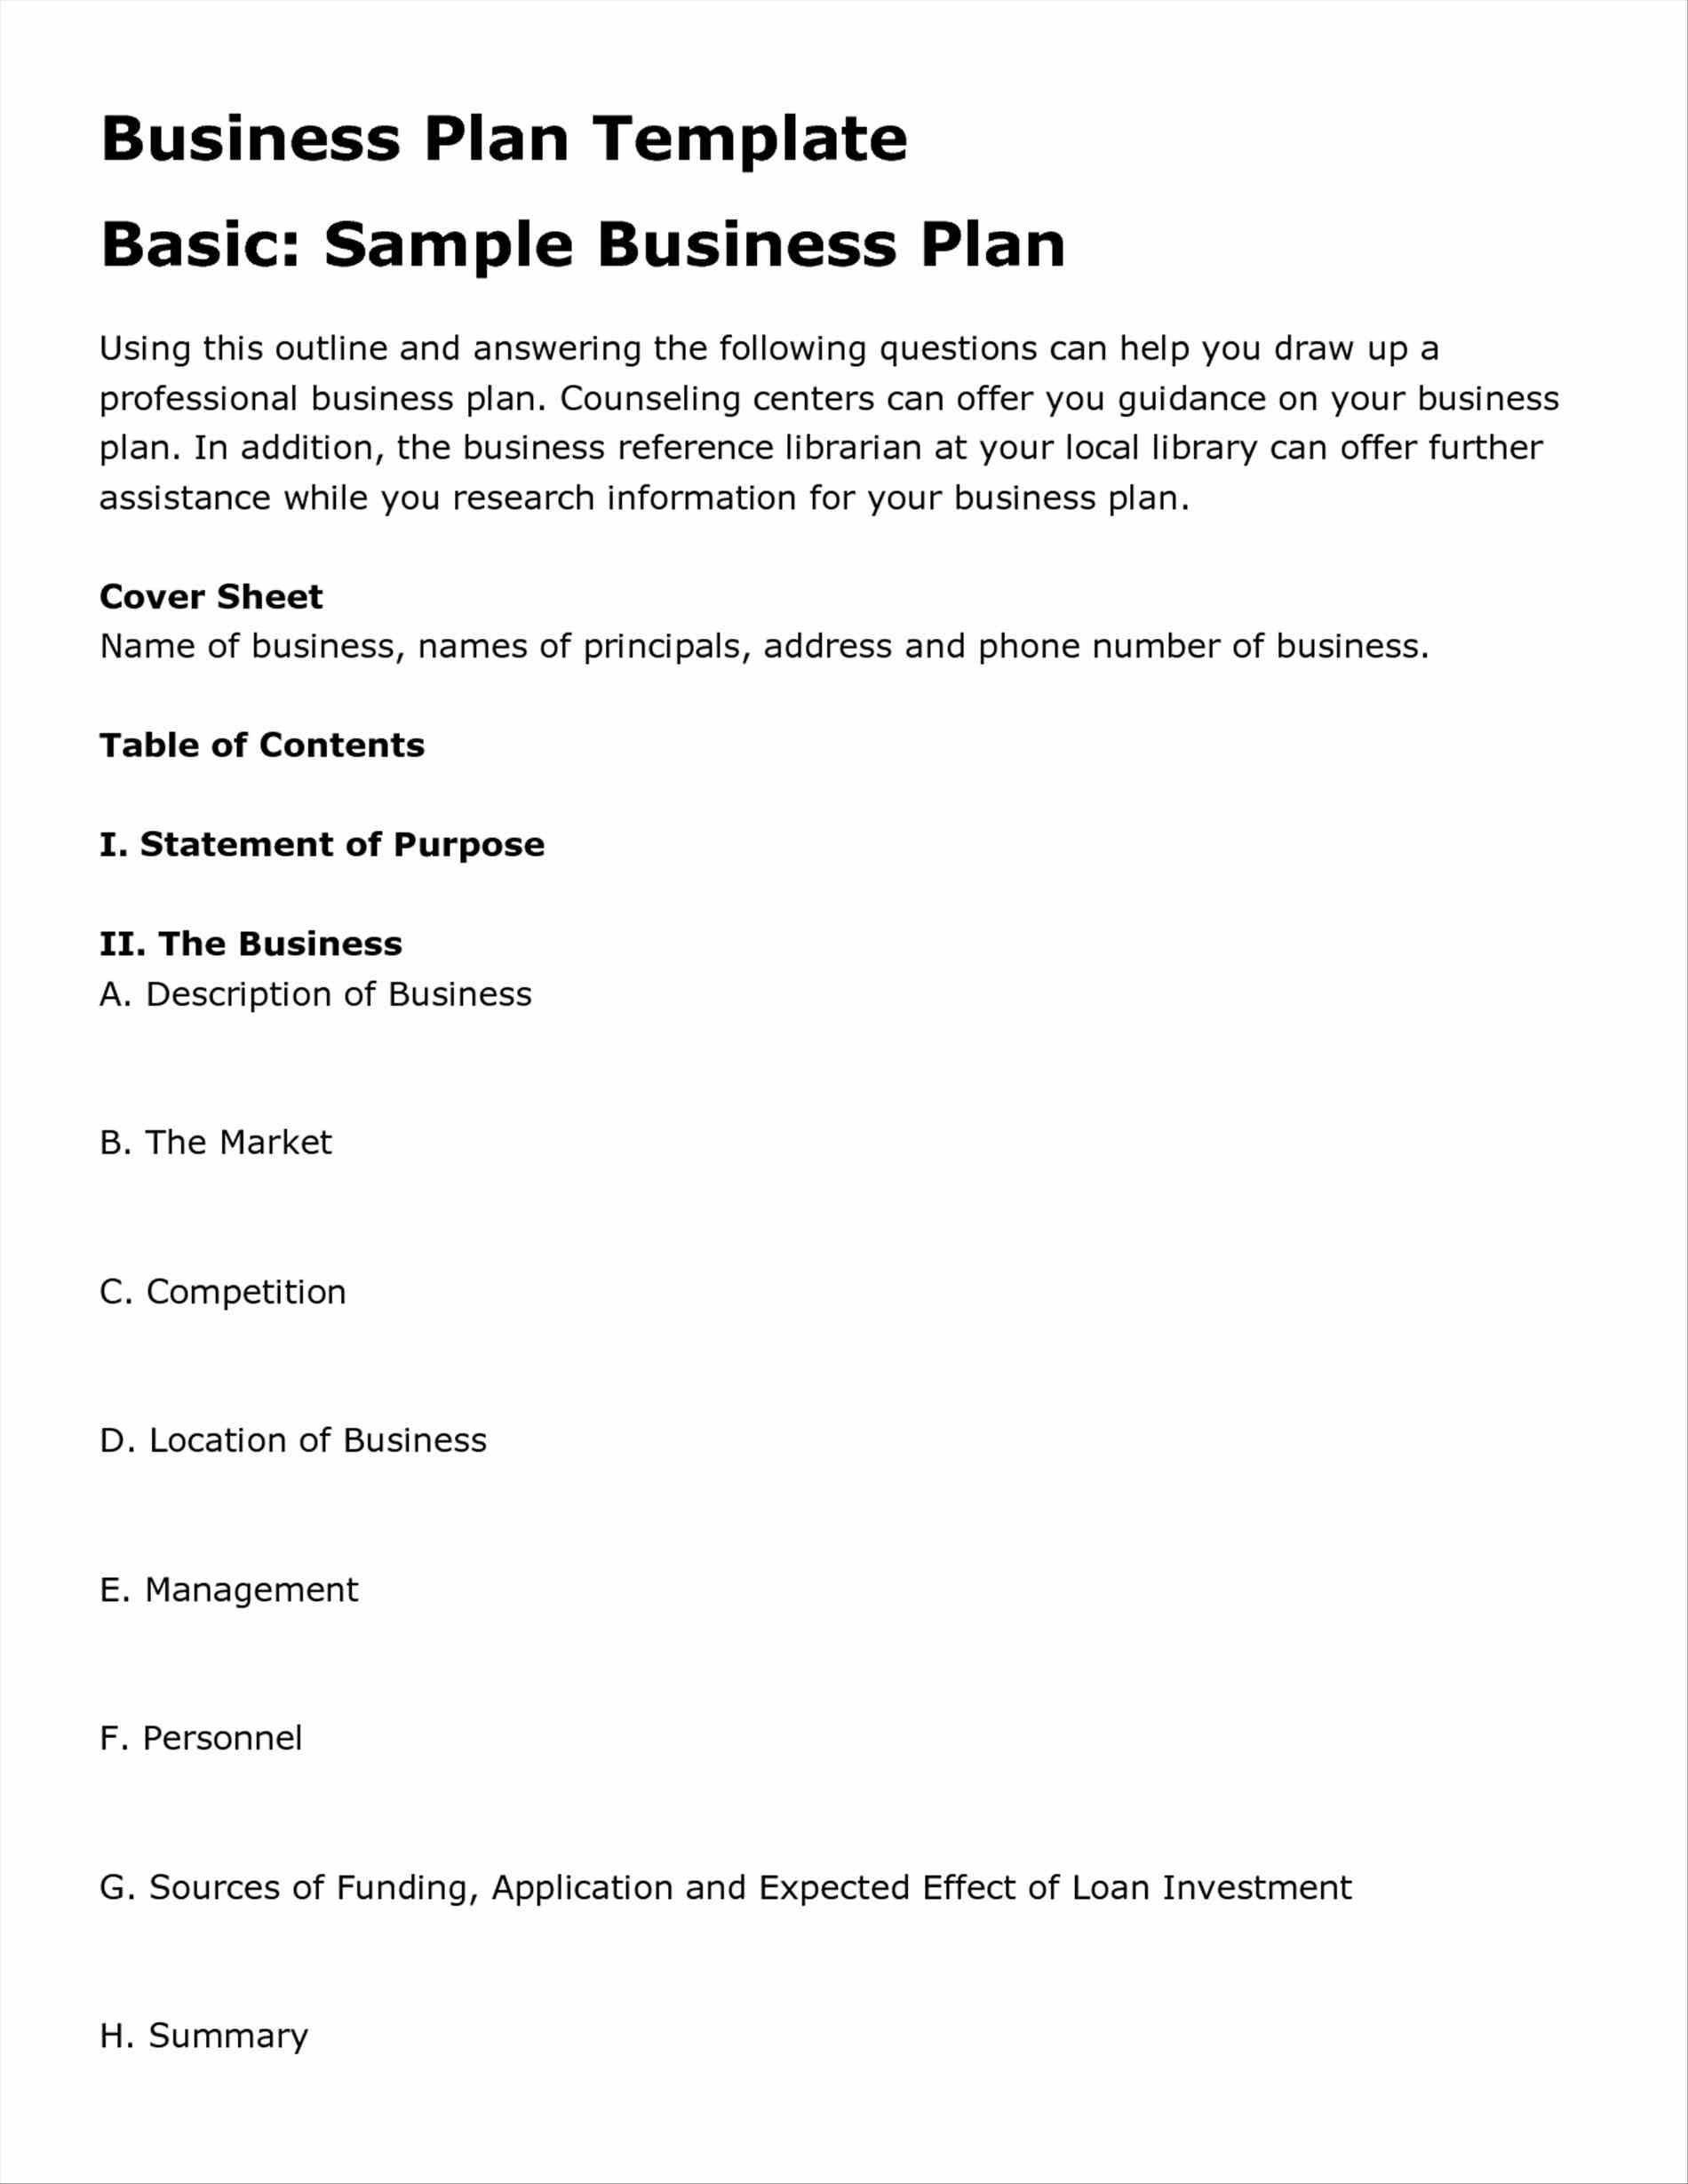 Business plan template restaurant templates in word excel pdf free business plan template restaurant templates in word excel pdf free cafe business plan template restaurant business plan templates in word excel fbccfo Choice Image